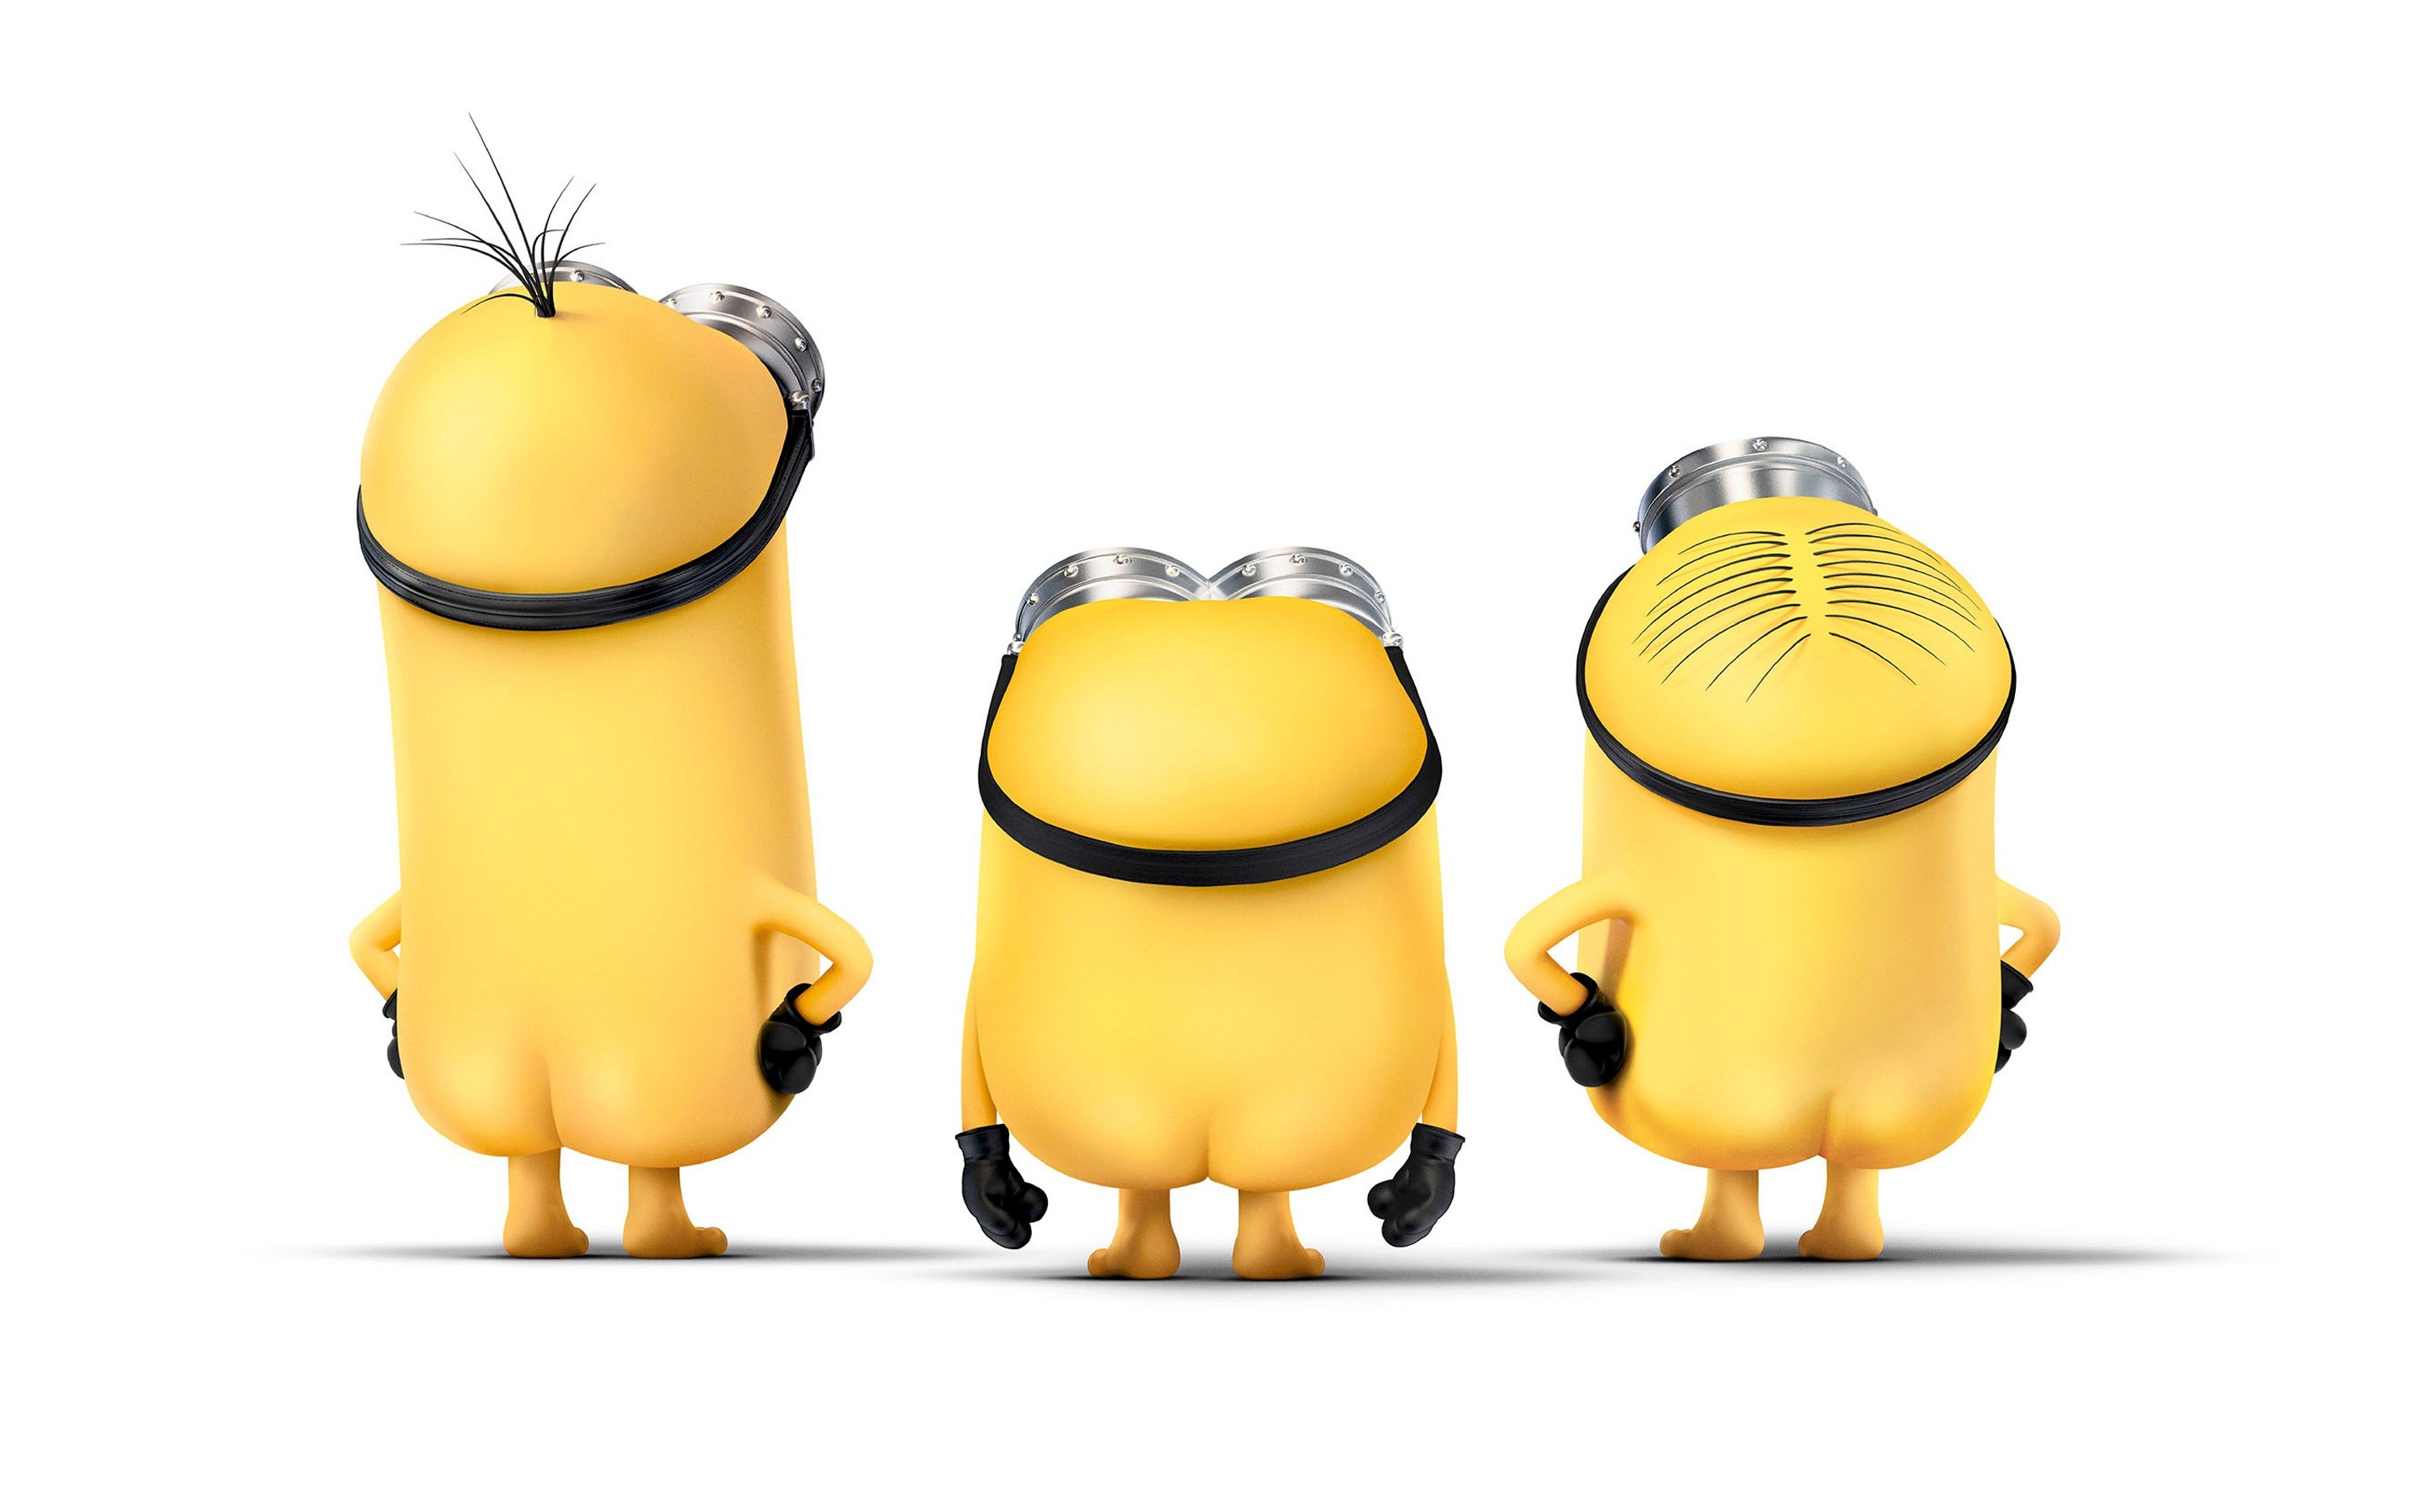 minion bob wallpaper (70+ images)